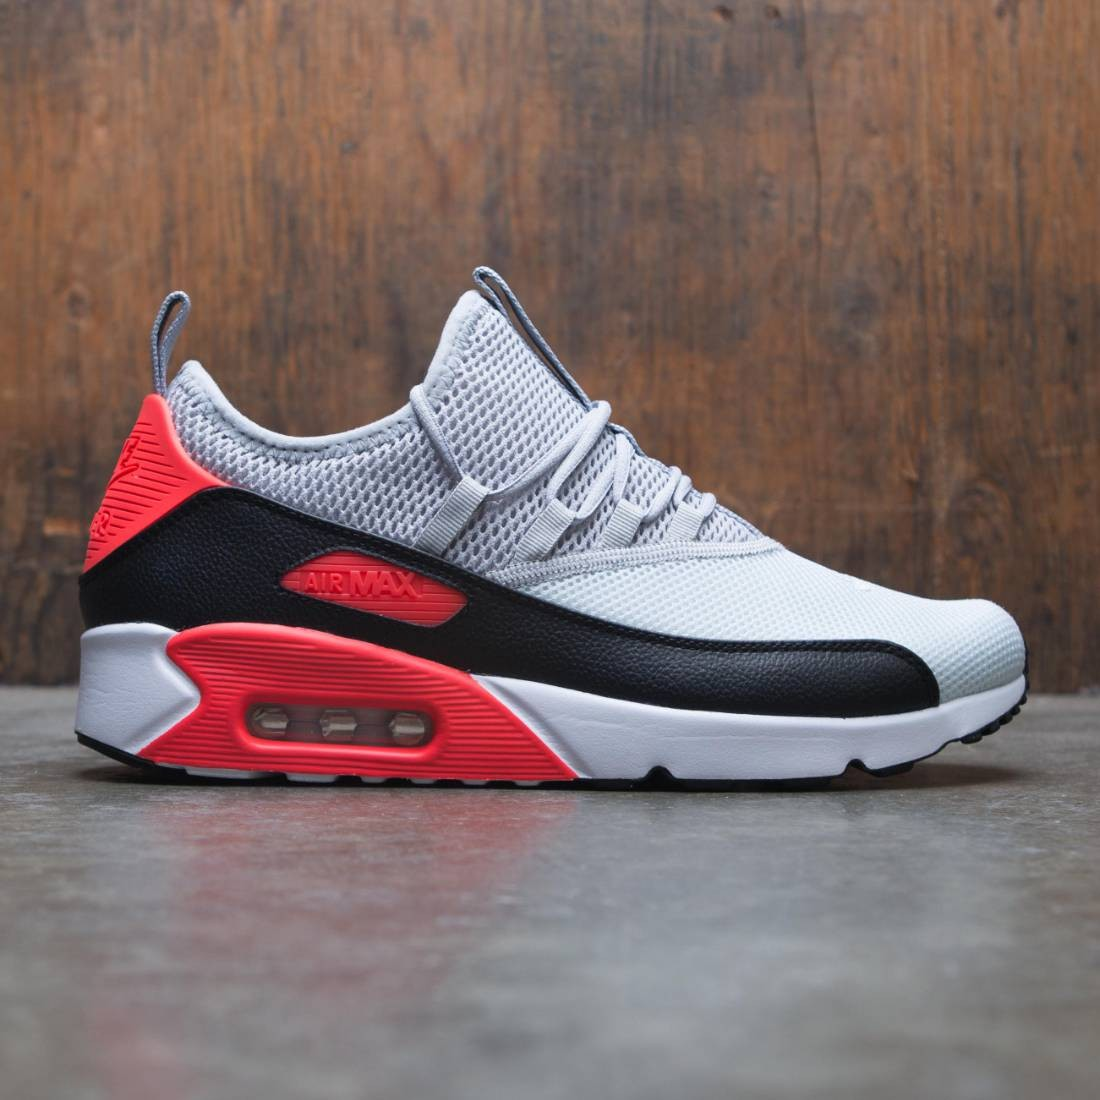 Nike Air Max 90 EZ Pure Platinum Wolf Grey Bright Crimson